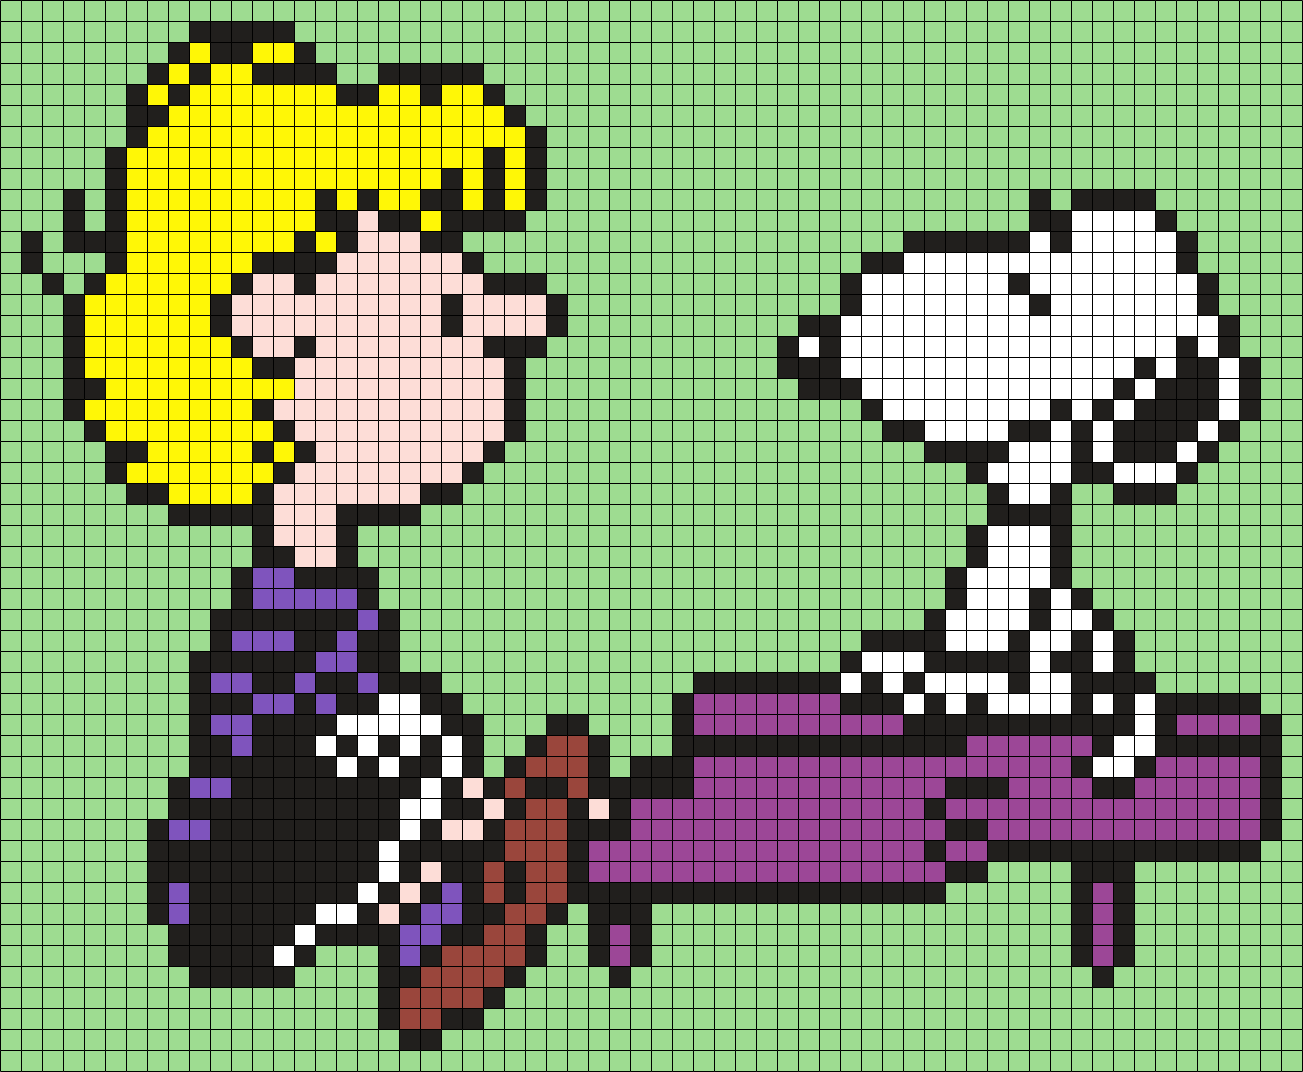 Schroeder And Snoopy From Snoopy And The Peanuts Gang (Square)